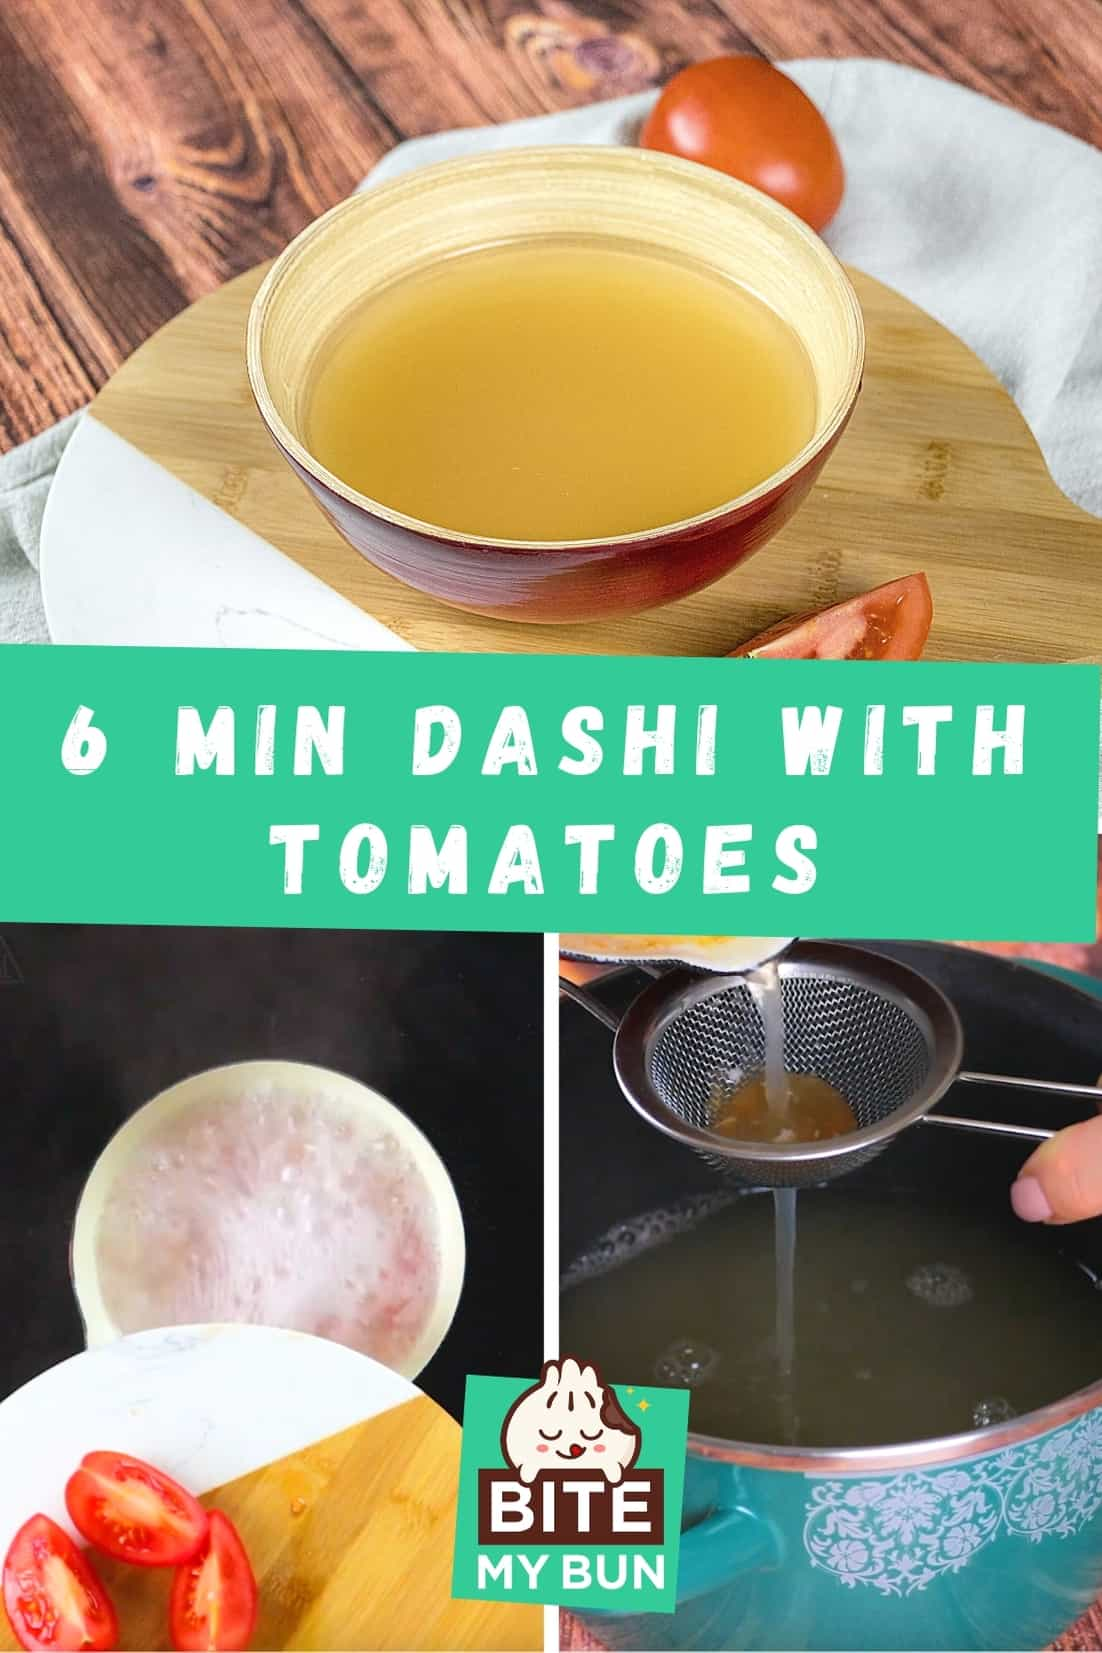 6 minute dashi with tomatoes